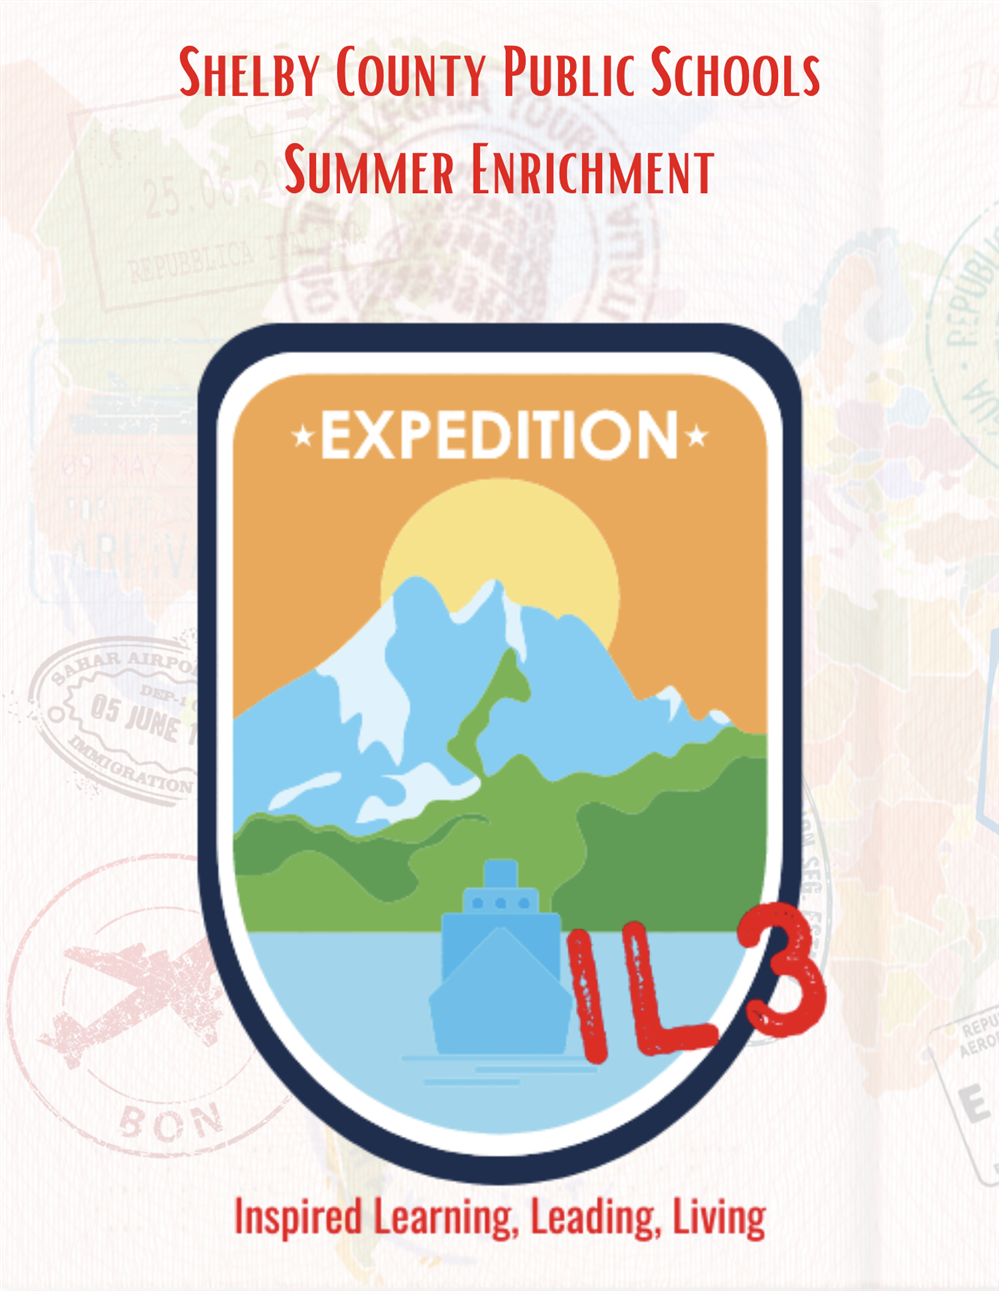 Expedition IL3 Summer Learning Image